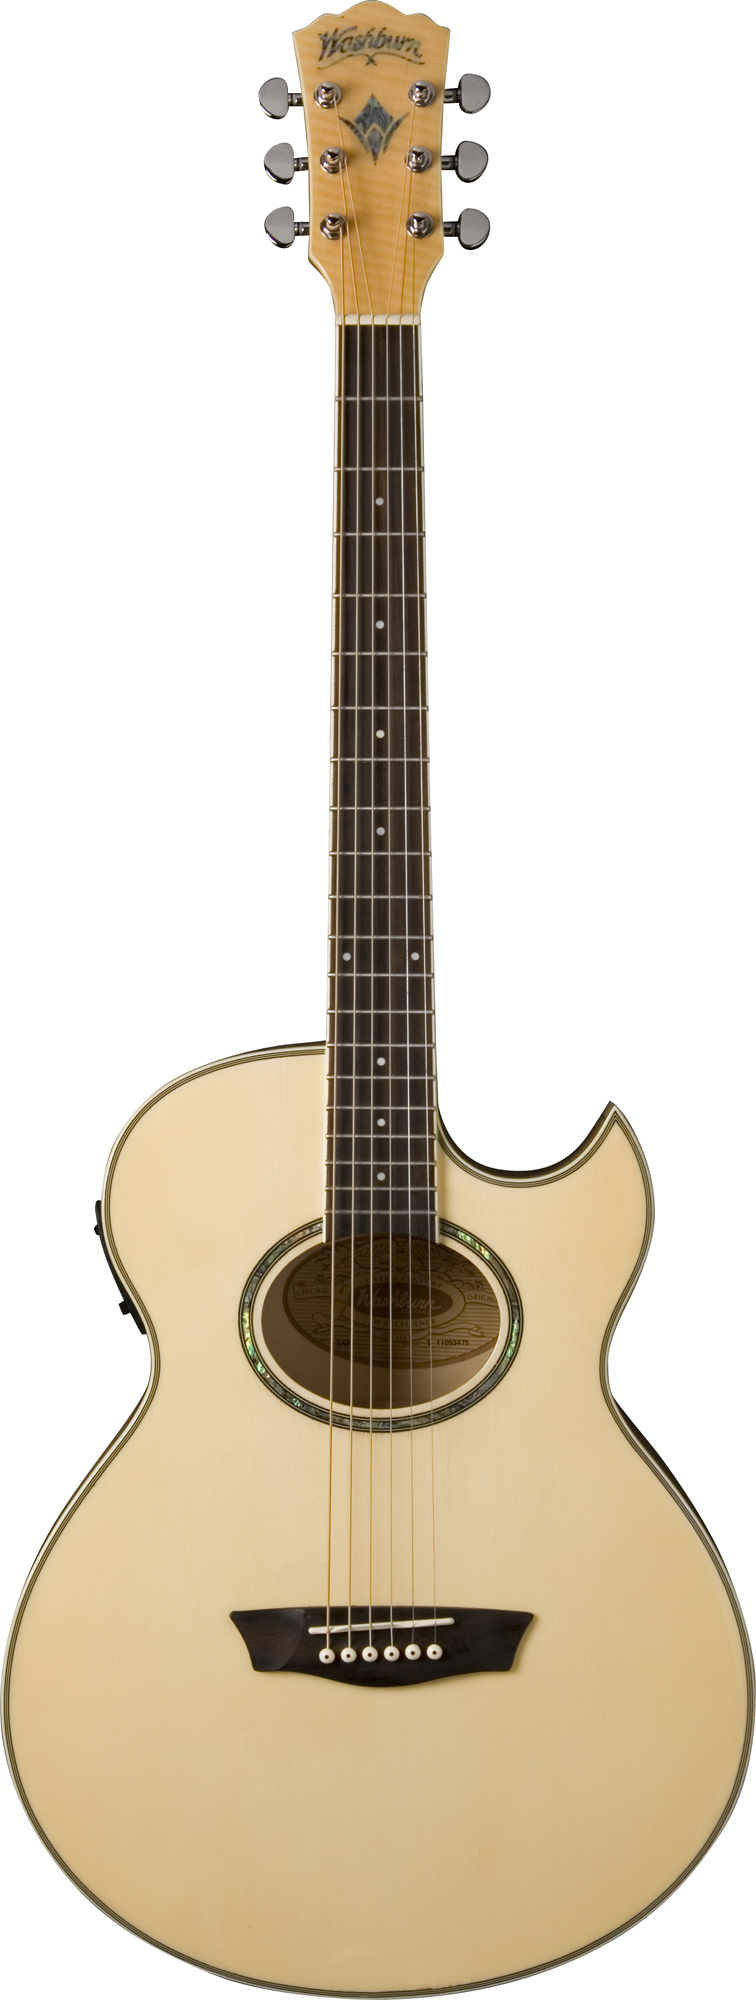 washburn ea20 electric florentine cutaway style guitar with 21 frets natural finish was12 ea20. Black Bedroom Furniture Sets. Home Design Ideas